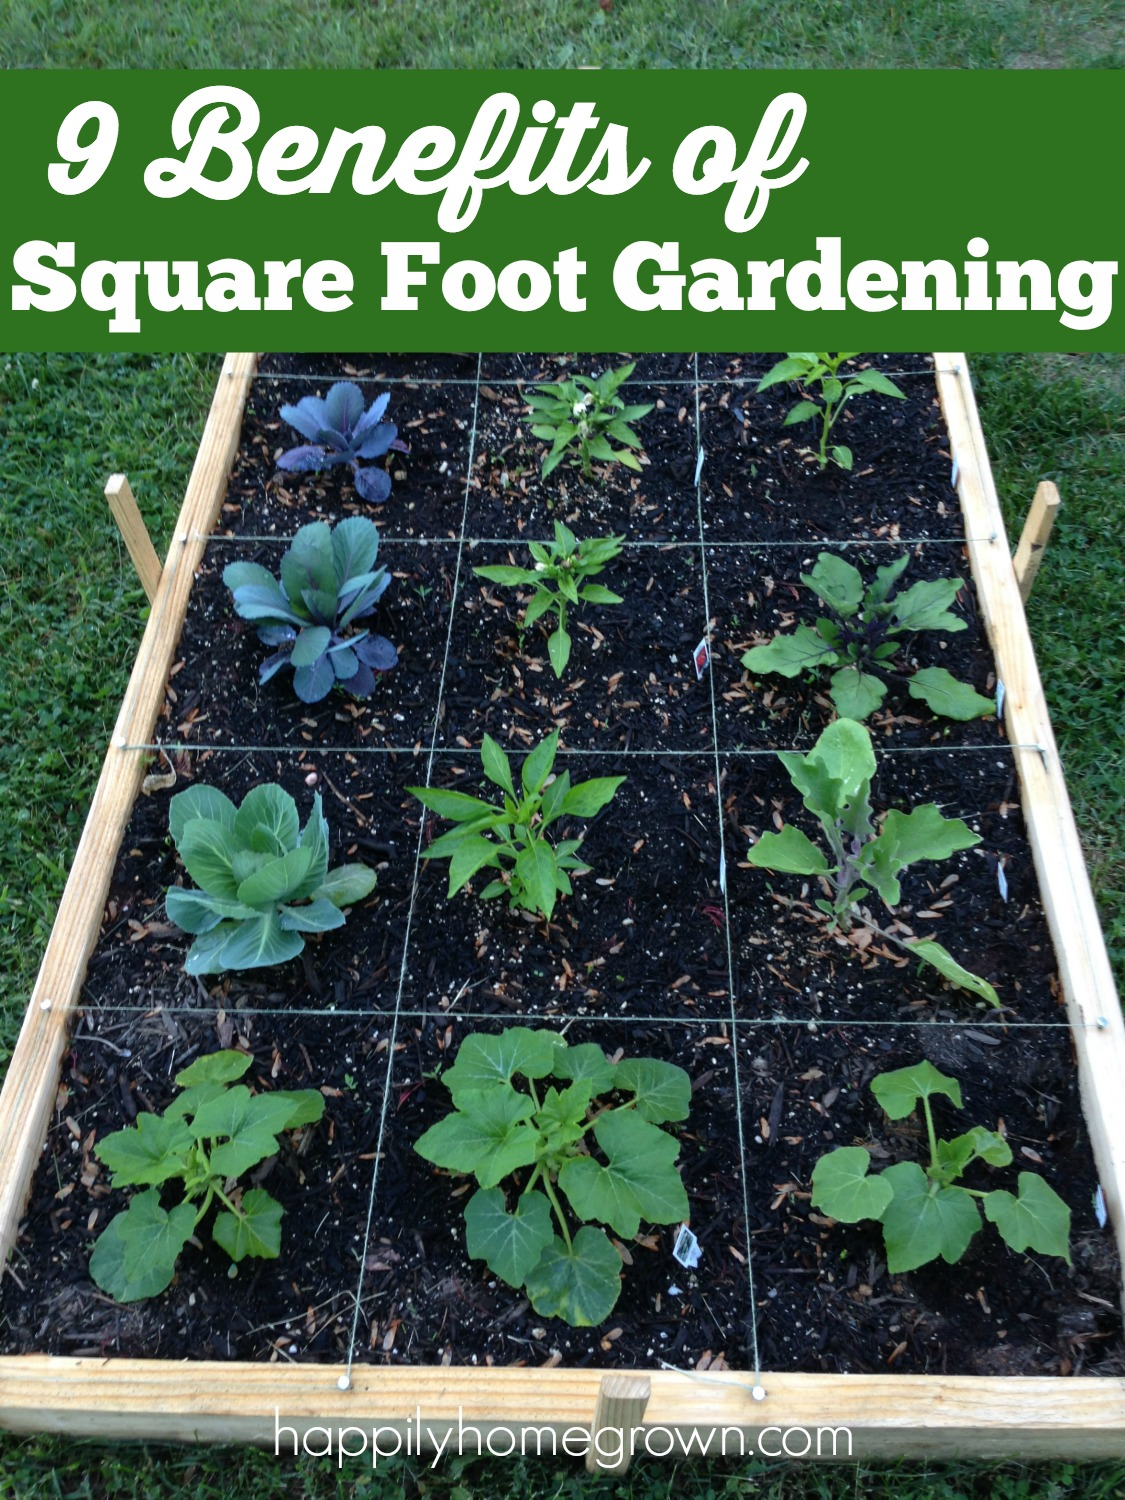 The goal with Square Foot Gardening and container gardening is to work smarter, not harder. Here are 9 of the benefits to Square Foot Gardening.